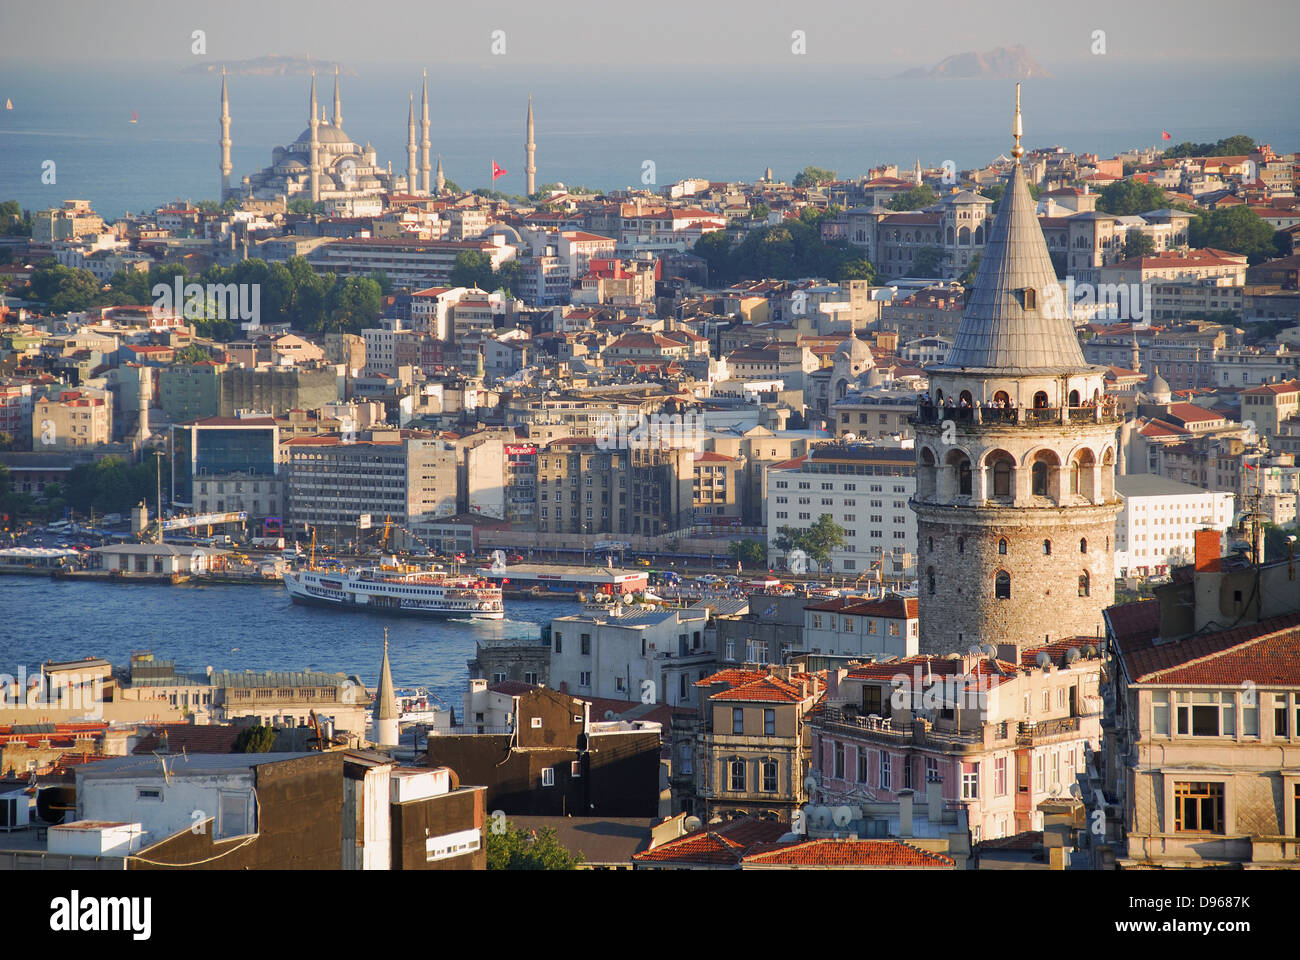 ISTANBUL, TURKEY. An evening view over Beyoglu towards Sultanhahmet district, with the Galata Tower on the right. - Stock Image